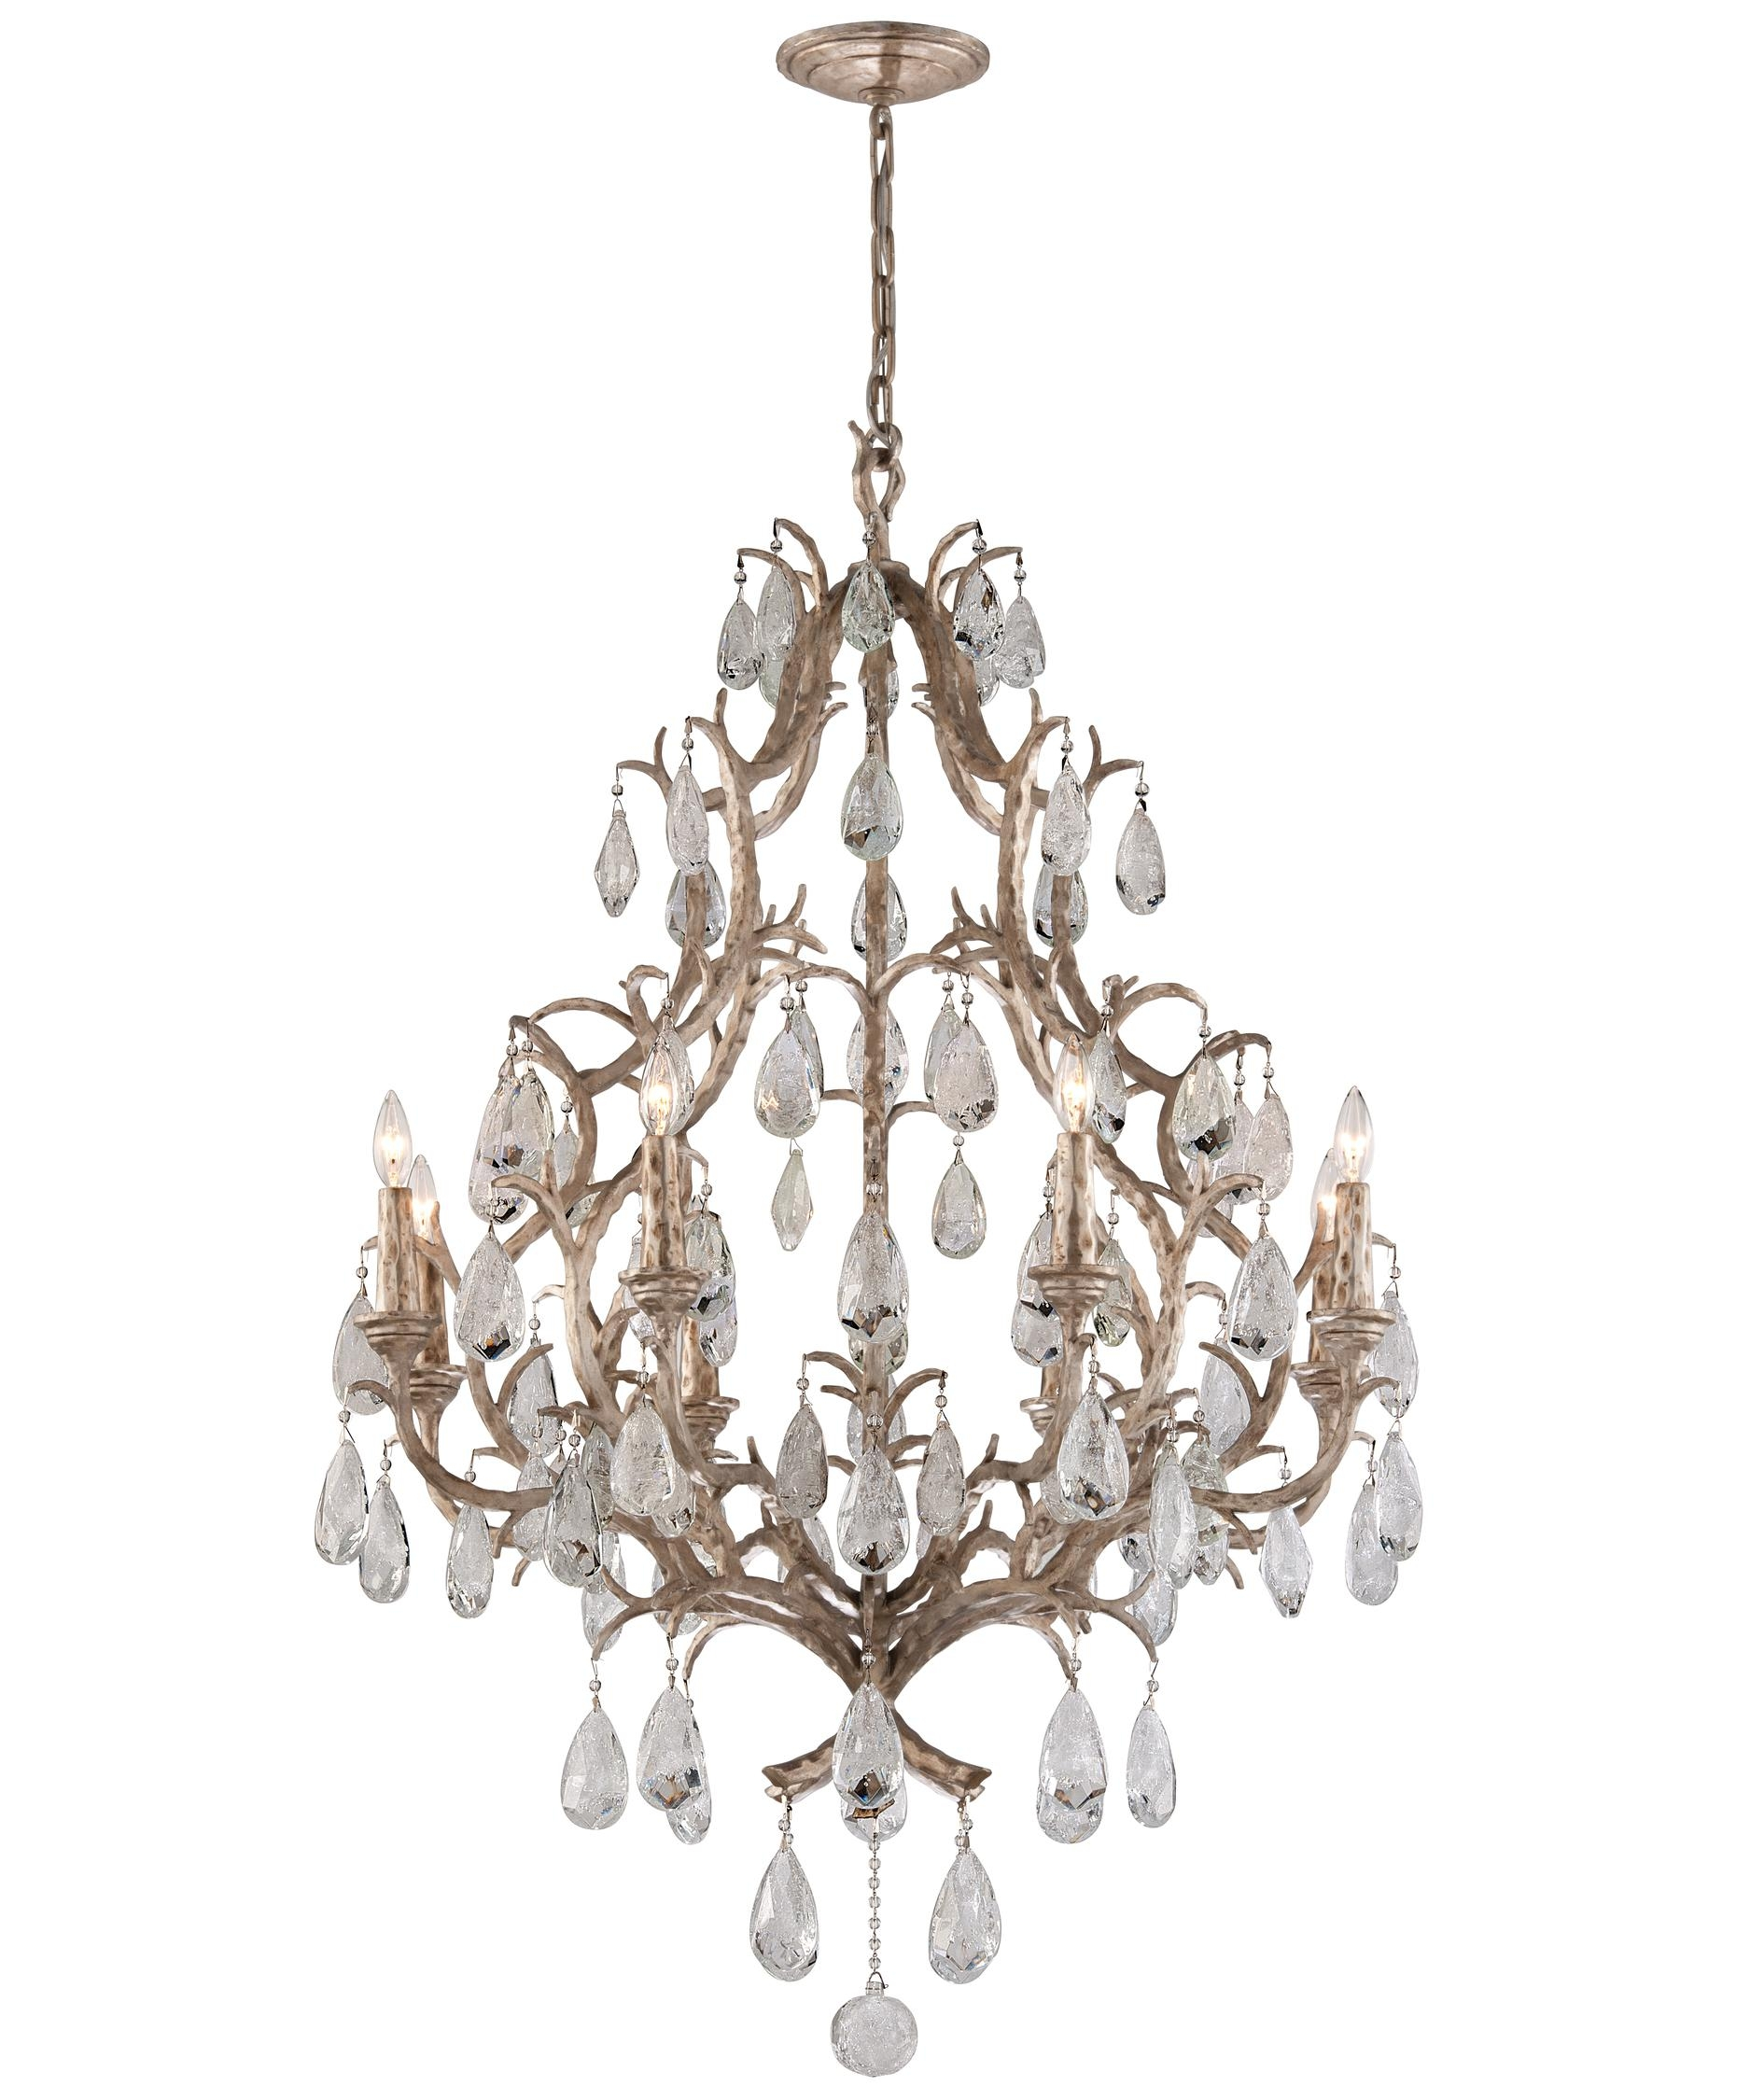 Awesome Chandelier Shades Clip On Best Home Decor Inspirations With Regard To Clip On Chandeliers (View 6 of 25)